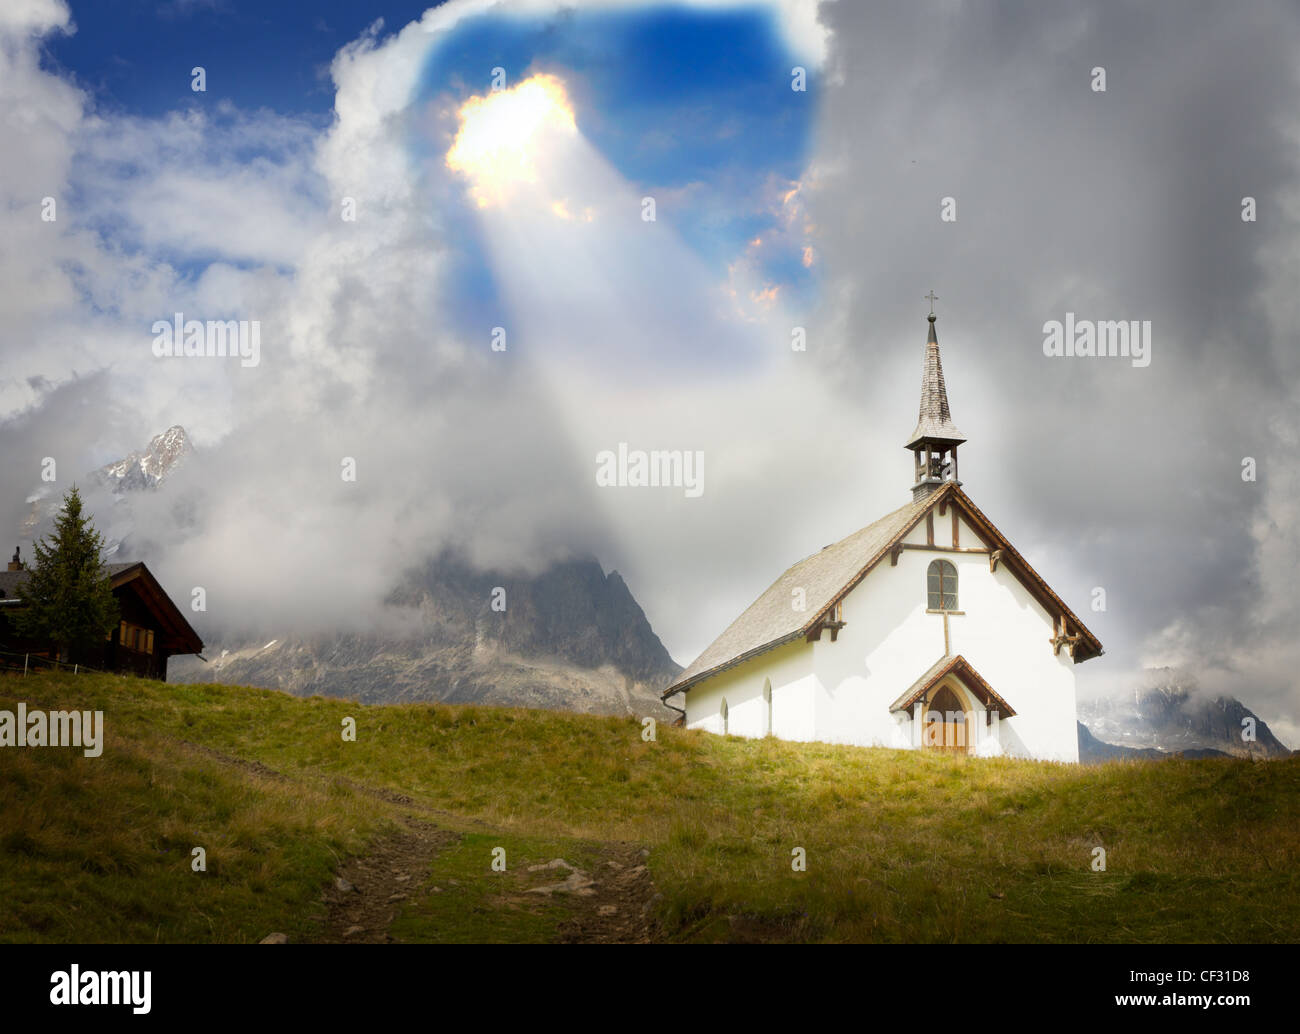 concept for christianity, god, belief, relief and trust: mountain chapel at Belalp near Aletsch glacier in a ray - Stock Image